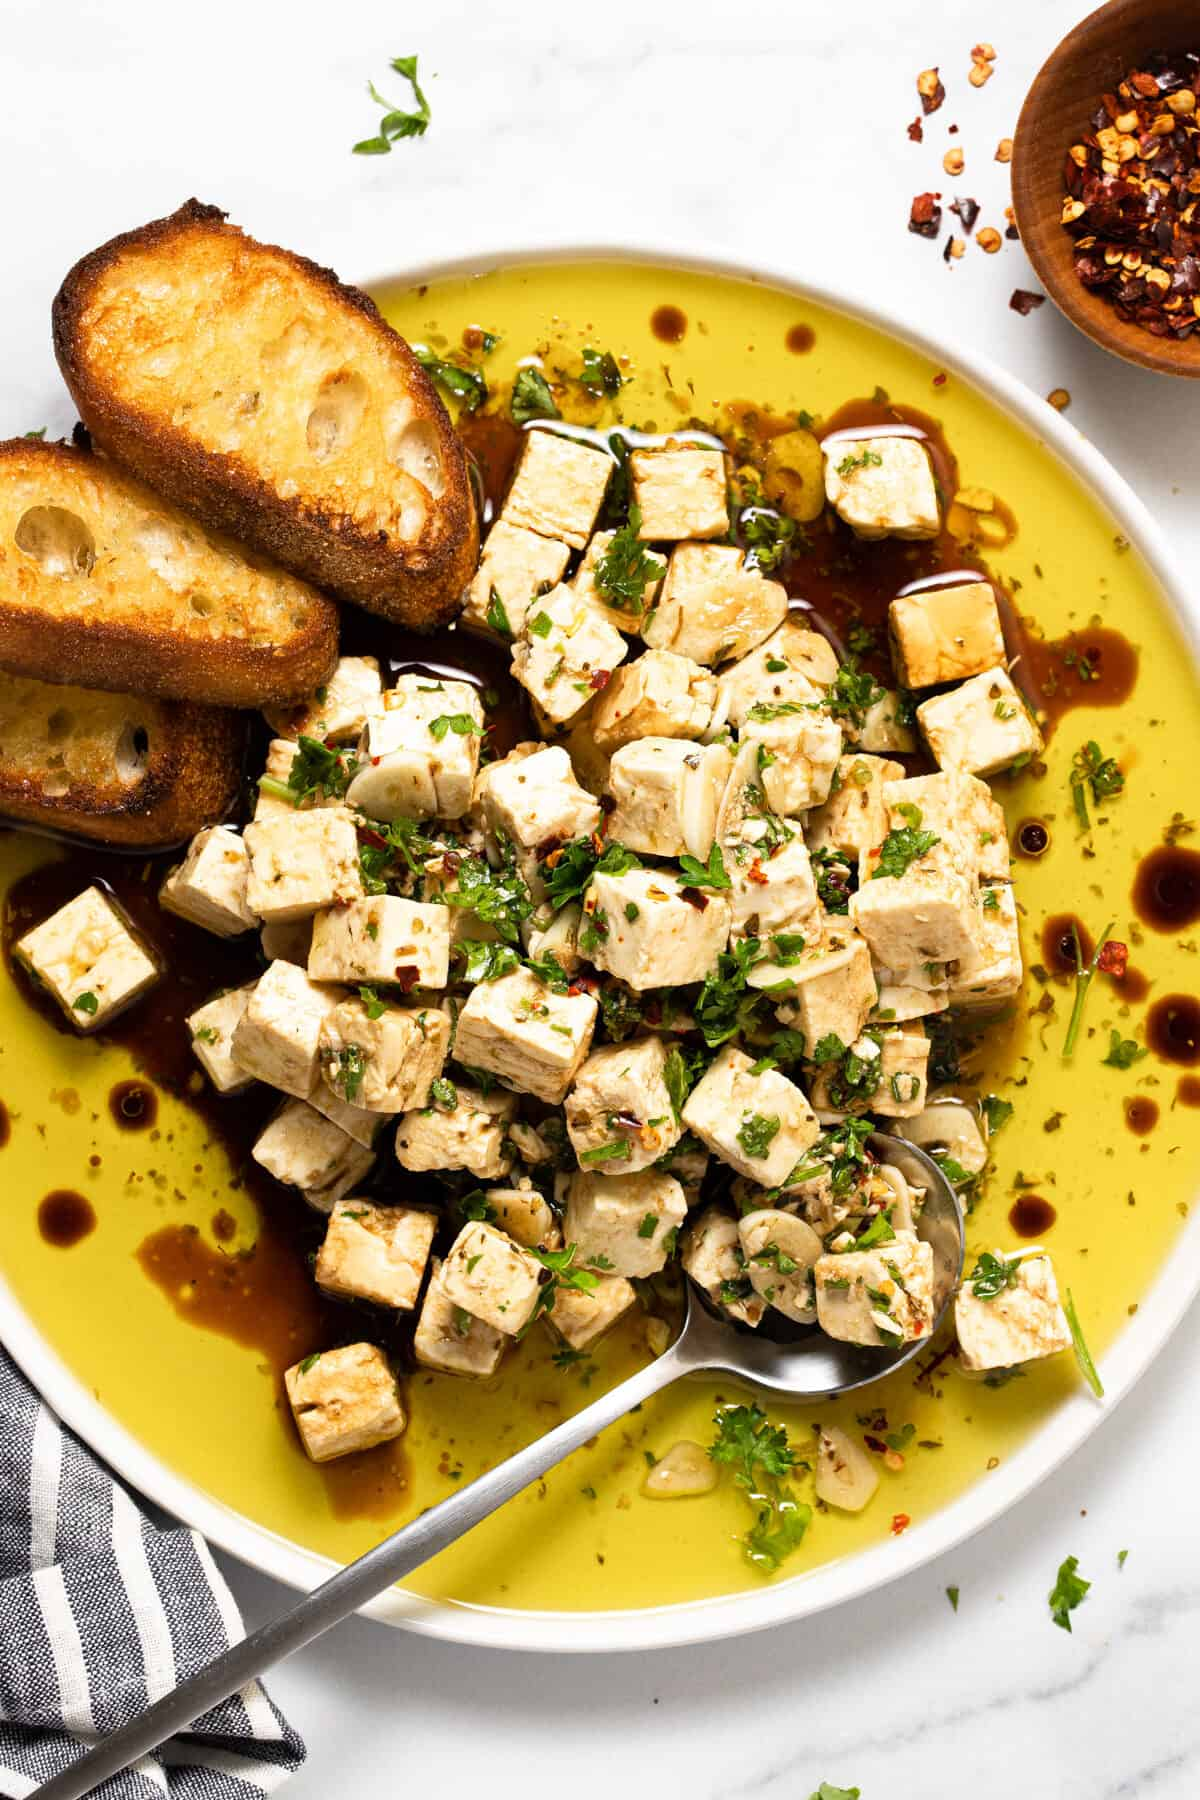 White plate filled with marinated squares of feta with crostini